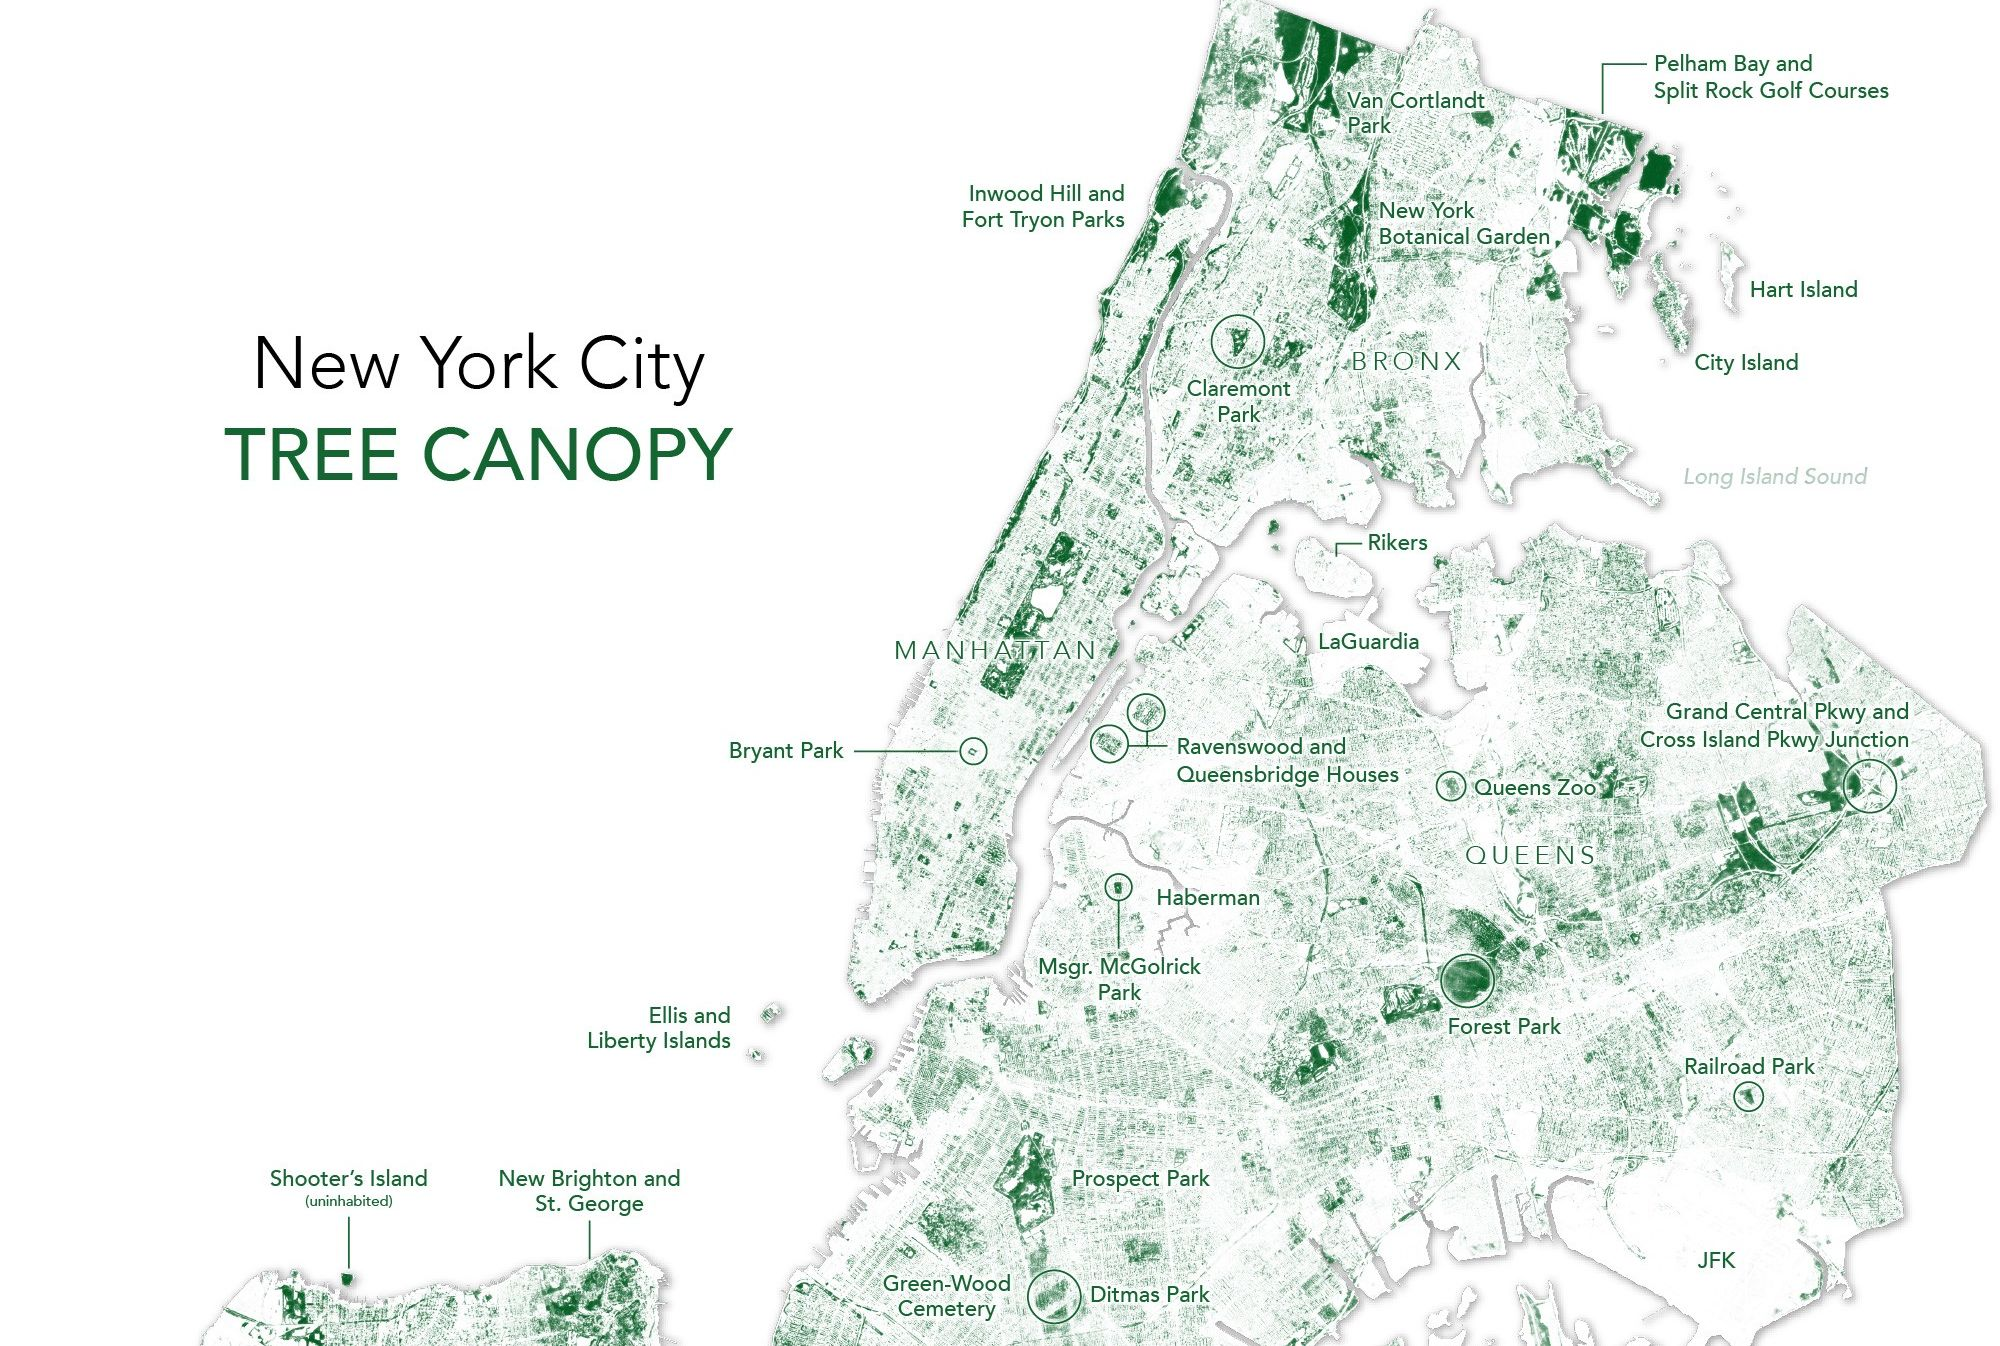 This Map Shows All the Trees in New York City | Mental Floss Show Map Of New York on show map of pakistan, show map of south jersey, show map of dutchess county, show map of western pennsylvania, show map of orlando, show map of mount everest, show map of district of columbia, show map of the west coast, show map of northern florida, show map of manhattan ny, show map of caribbean sea, show map of boston area, show map of mich, show map of hudson river, show map of charlotte, show map of eastern time zone, show map ohio, show map of fiji, show map of omaha, show map of calif,